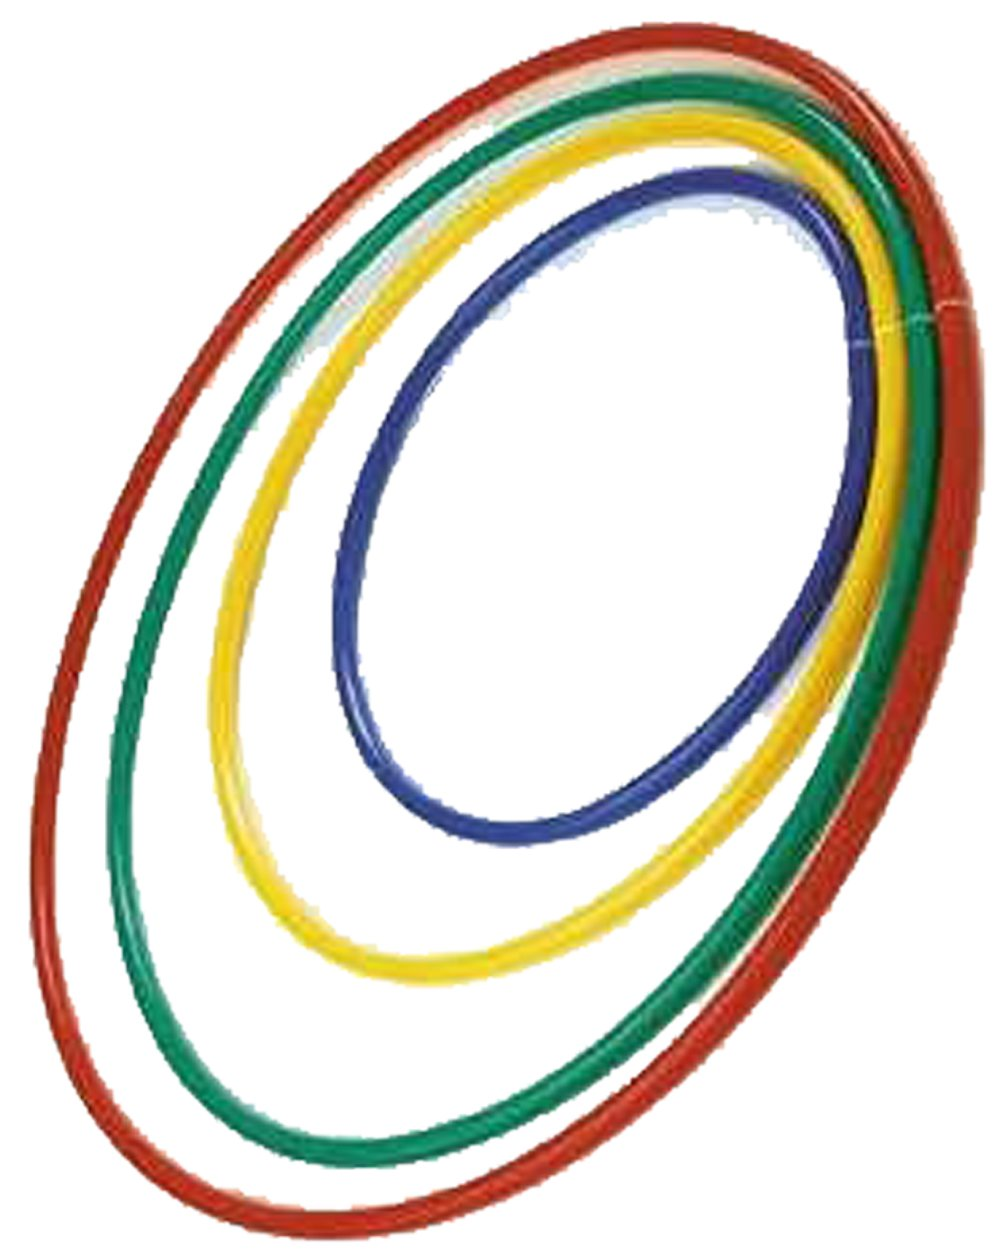 WORKOUT EXERCISE & FITNESS PLASTIC HOOP RING KIDS GYM PE PLAY HULA HOOP ASSORTED OSG